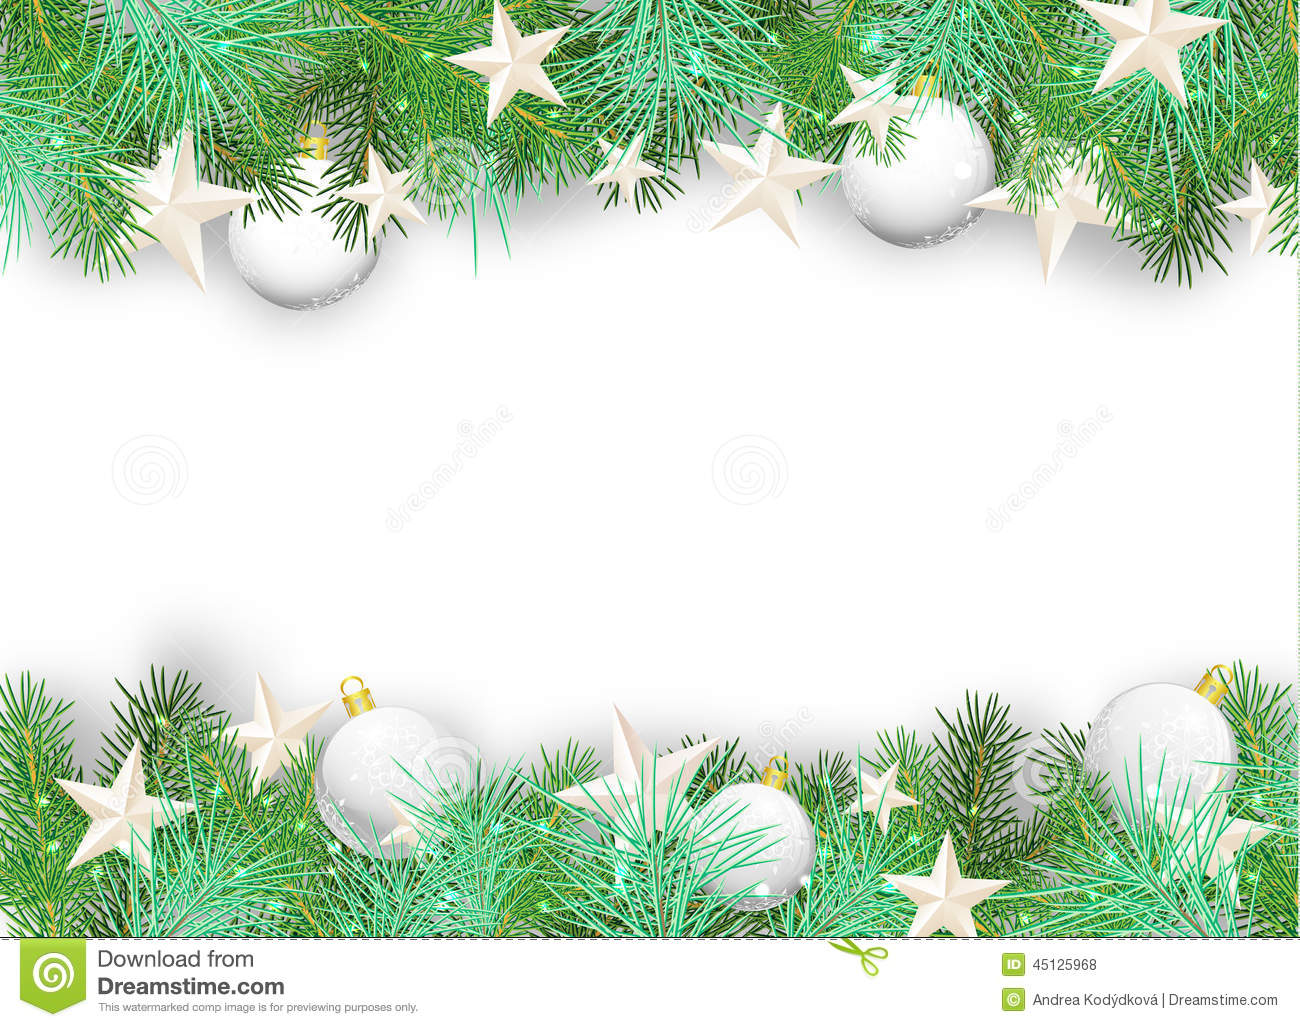 White christmas tree ornaments decorations - Christmas Background With White Ornaments And Branches